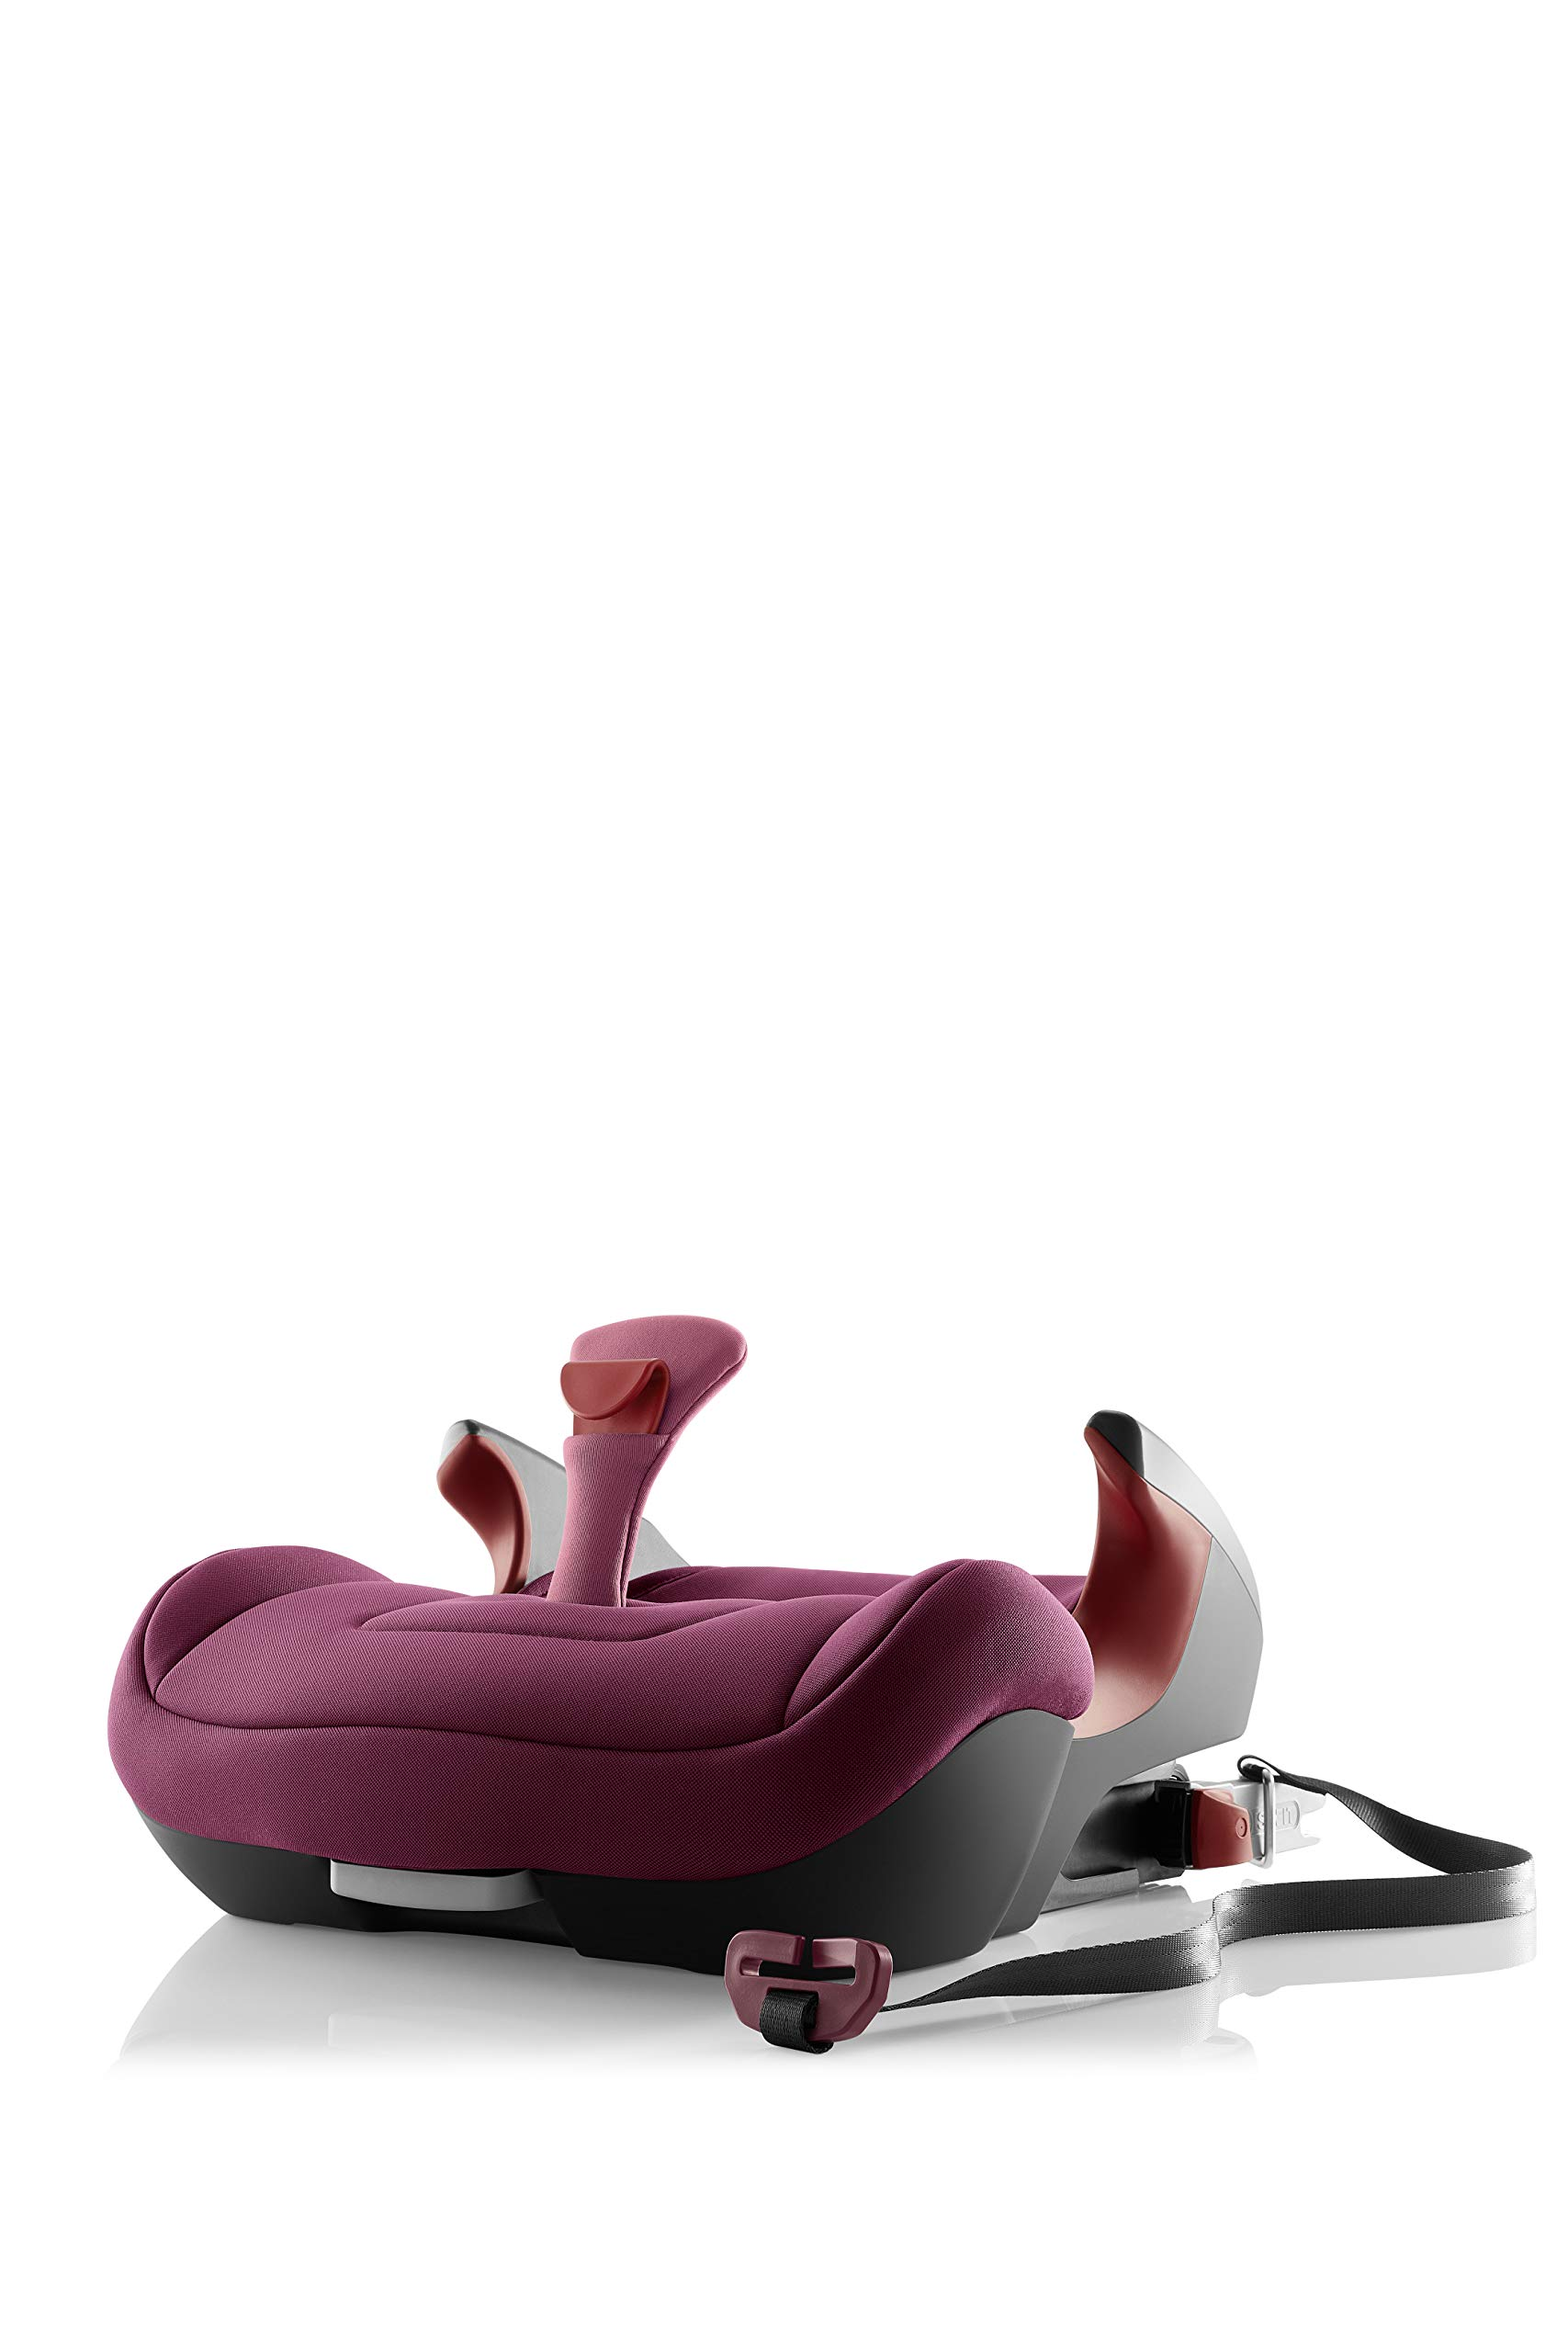 Britax Römer KIDFIX² S Group 2-3 (15-36kg) Car Seat - Wine Rose  Advanced side impact protection - sict offers superior protection to your child in the event of a side collision. reducing impact forces by minimising the distance between the car and the car seat. Secure guard - helps to protect your child's delicate abdominal area by adding an extra - a 4th - contact point to the 3-point seat belt. High back booster - protects your child in 3 ways: provides head to hip protection; belt guides provide correct positioning of the seat belt and the padded headrest provides safety and comfort. 5